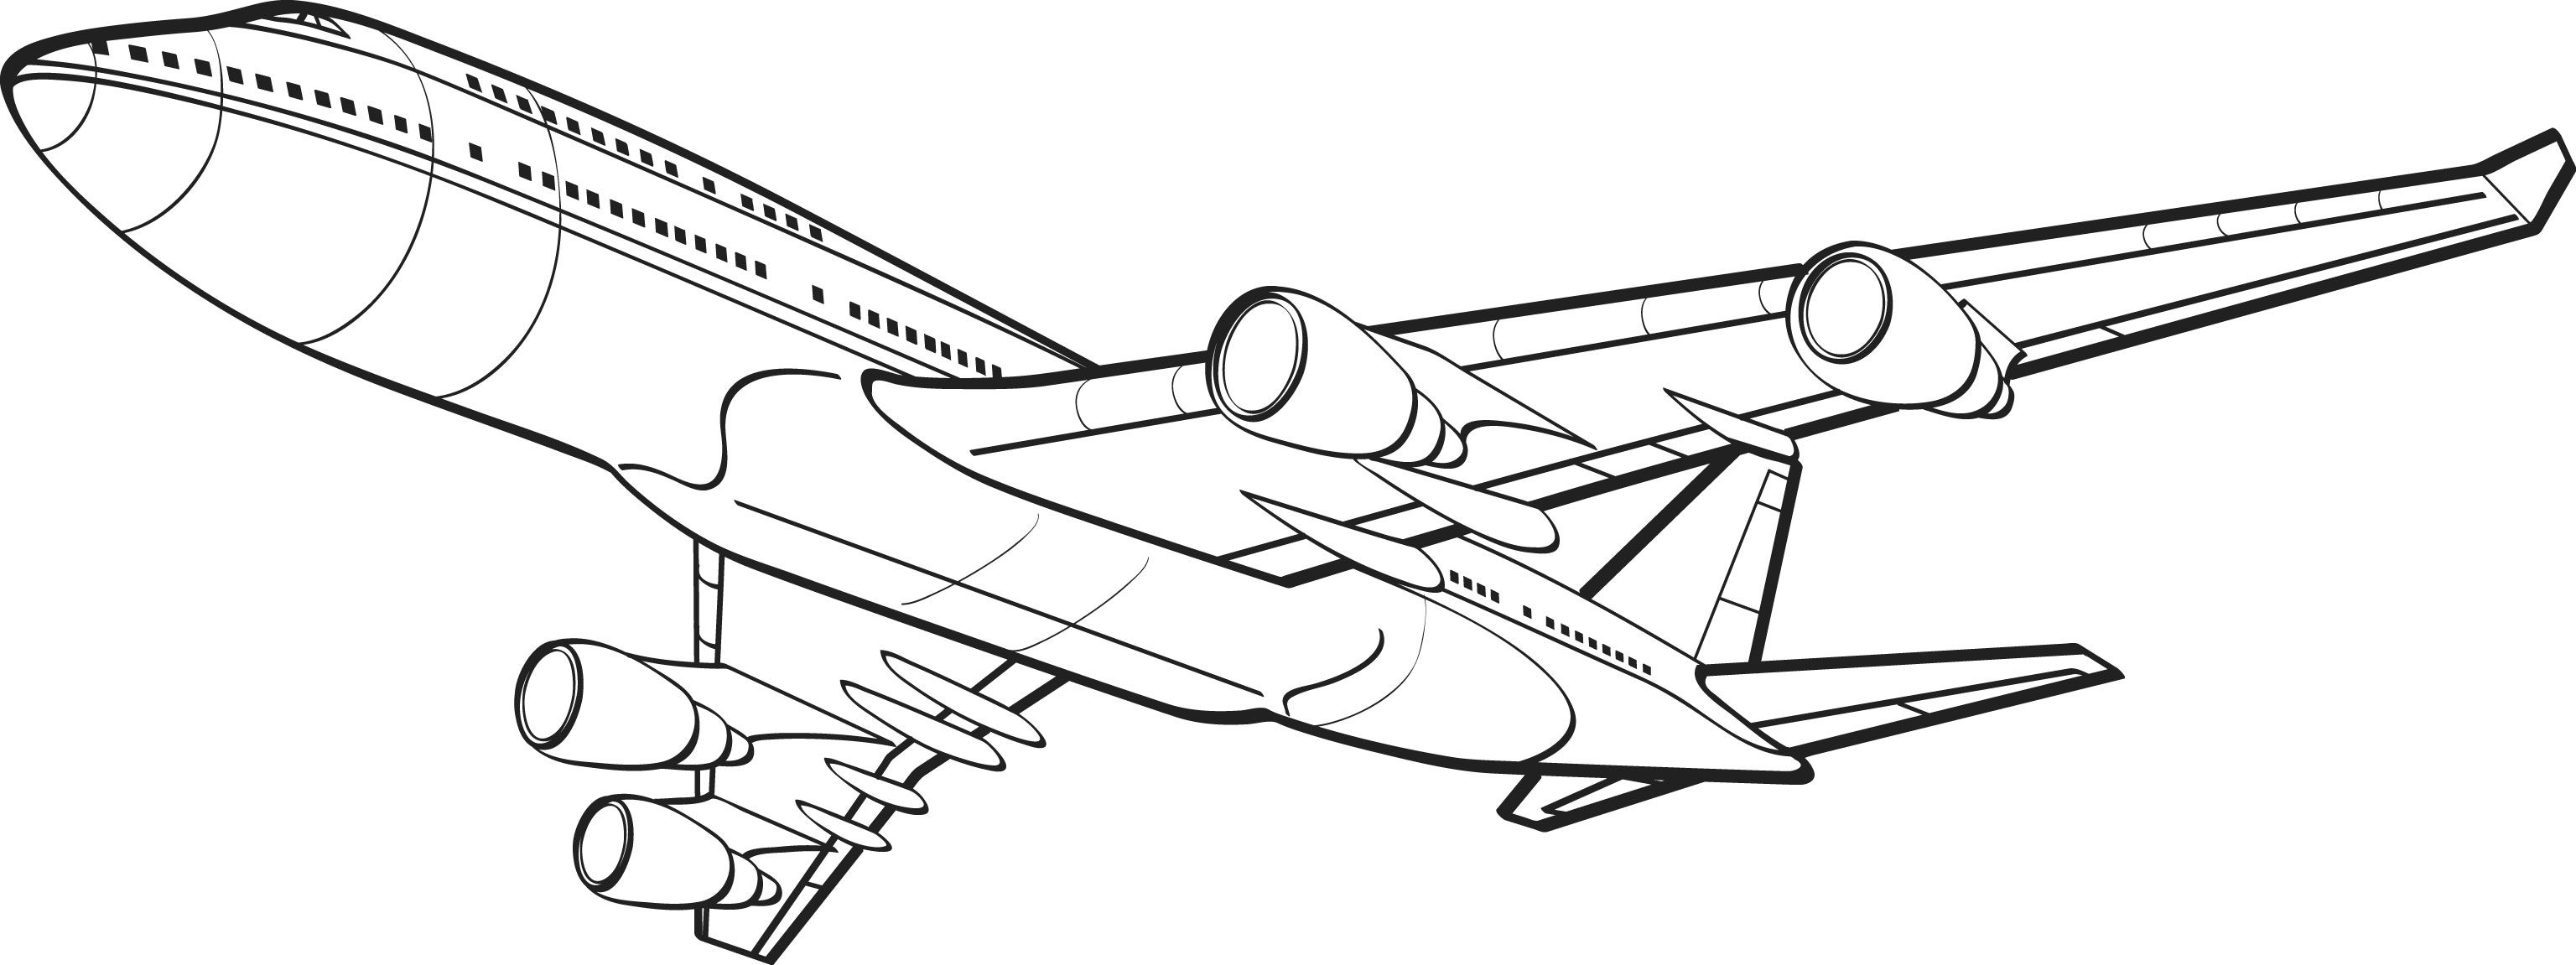 3072x1151 Competitive Vintage Airplane Coloring Pages Printable